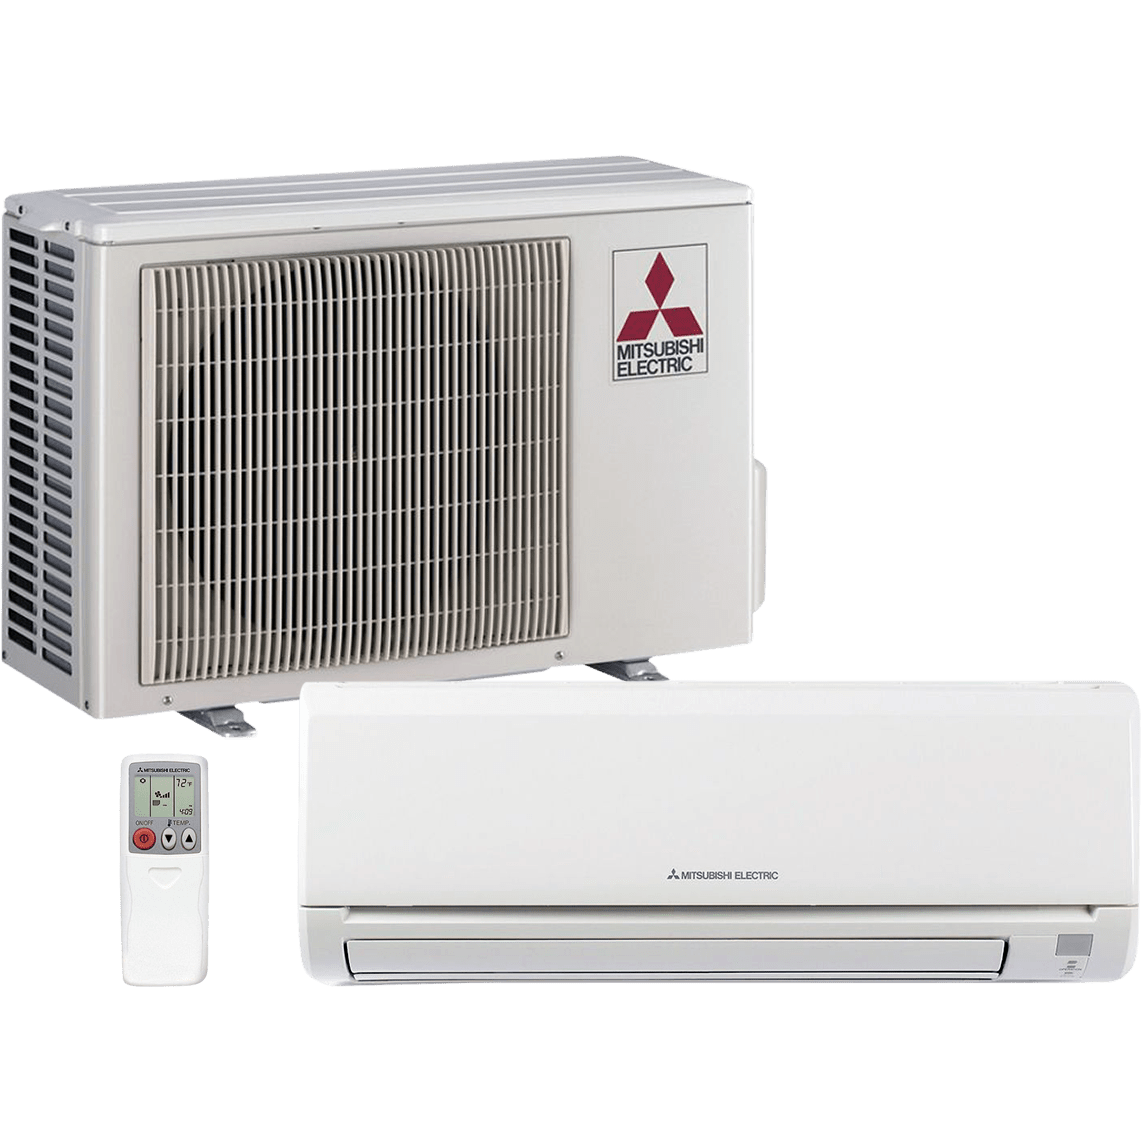 Mitsubishi 12,000 BTU Mini-Split Air Conditioner (MY-GL12NA) mi6206k